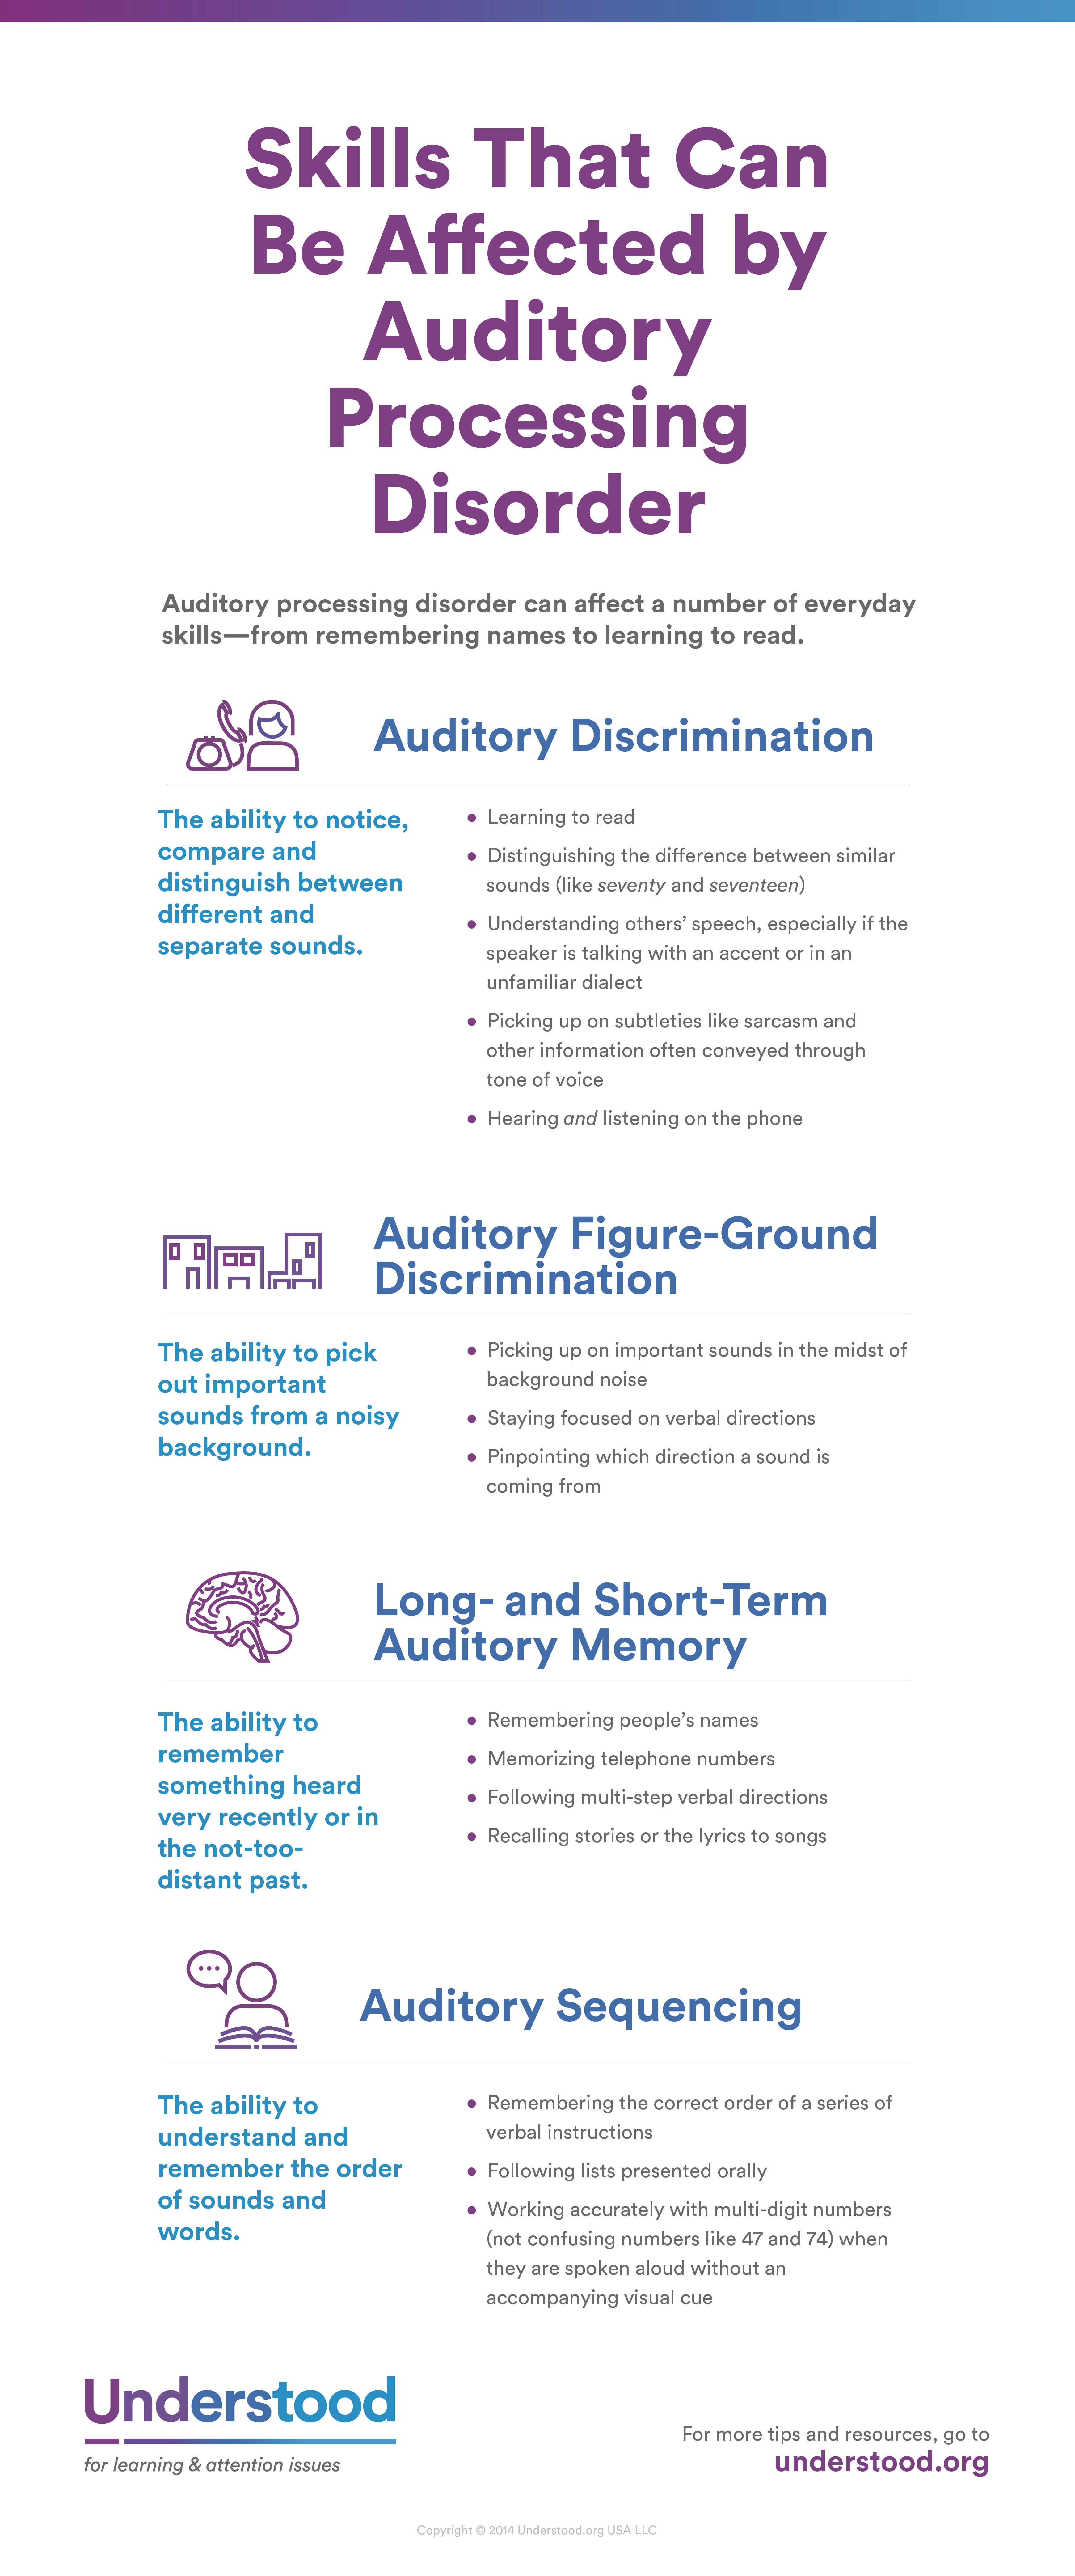 Skills That Can Be Affected By Auditory Processing